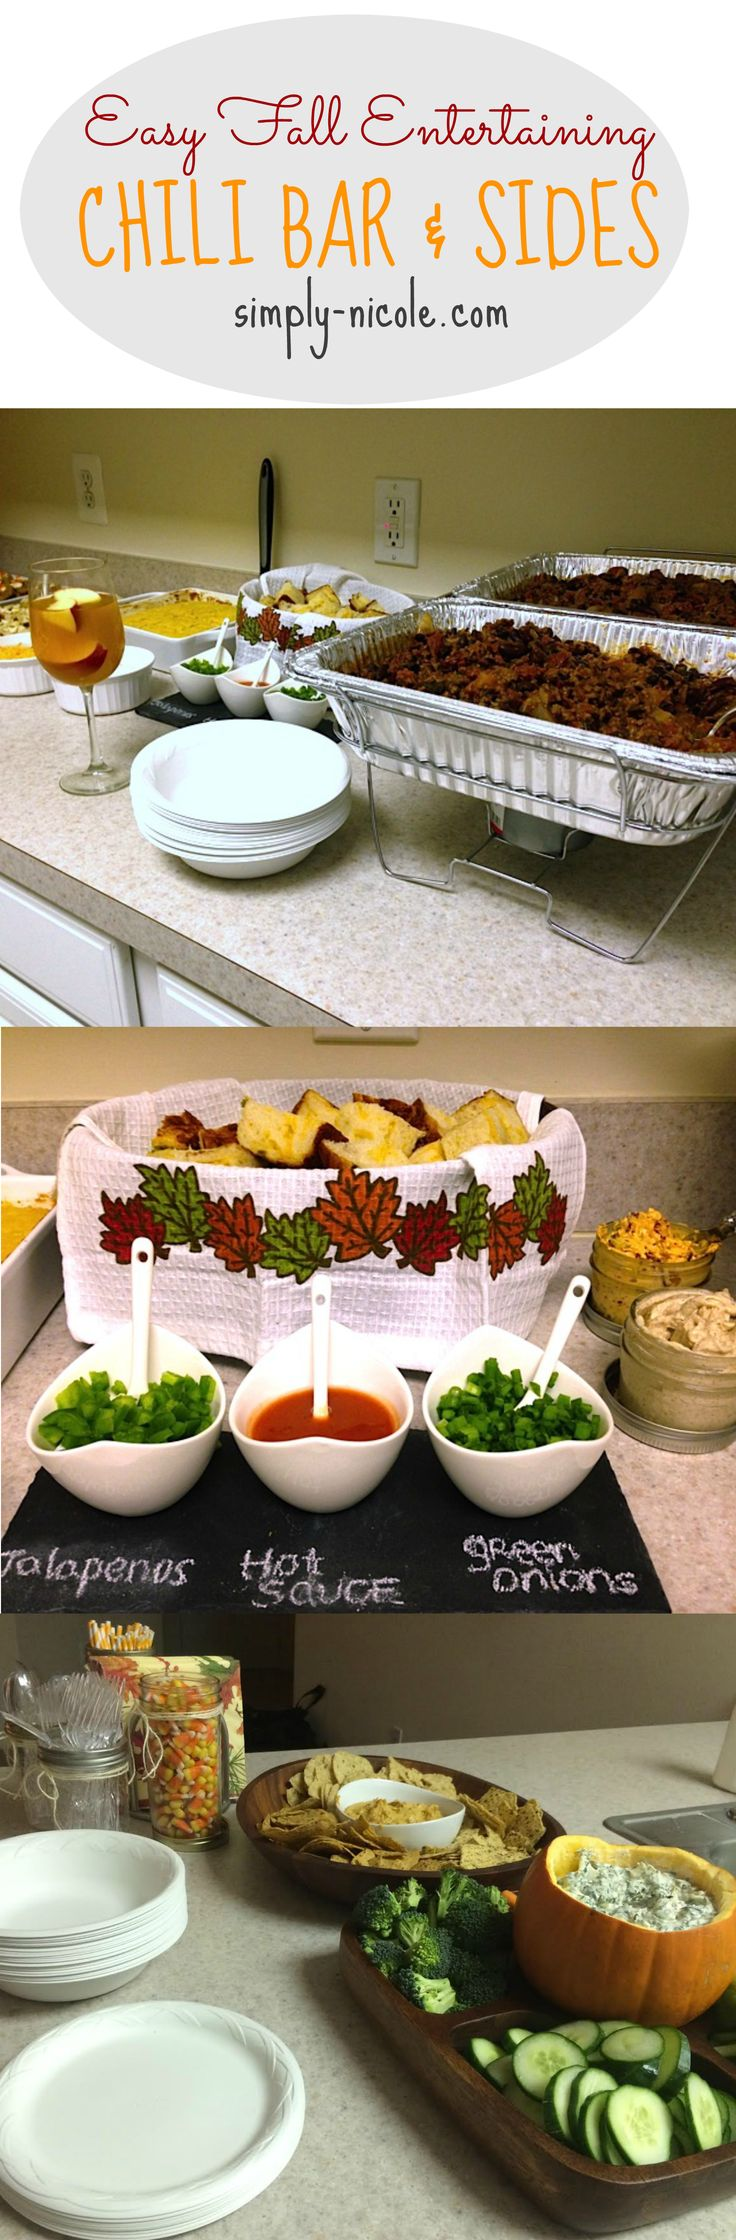 Easy Fall Entertaining at simply-nicole.com